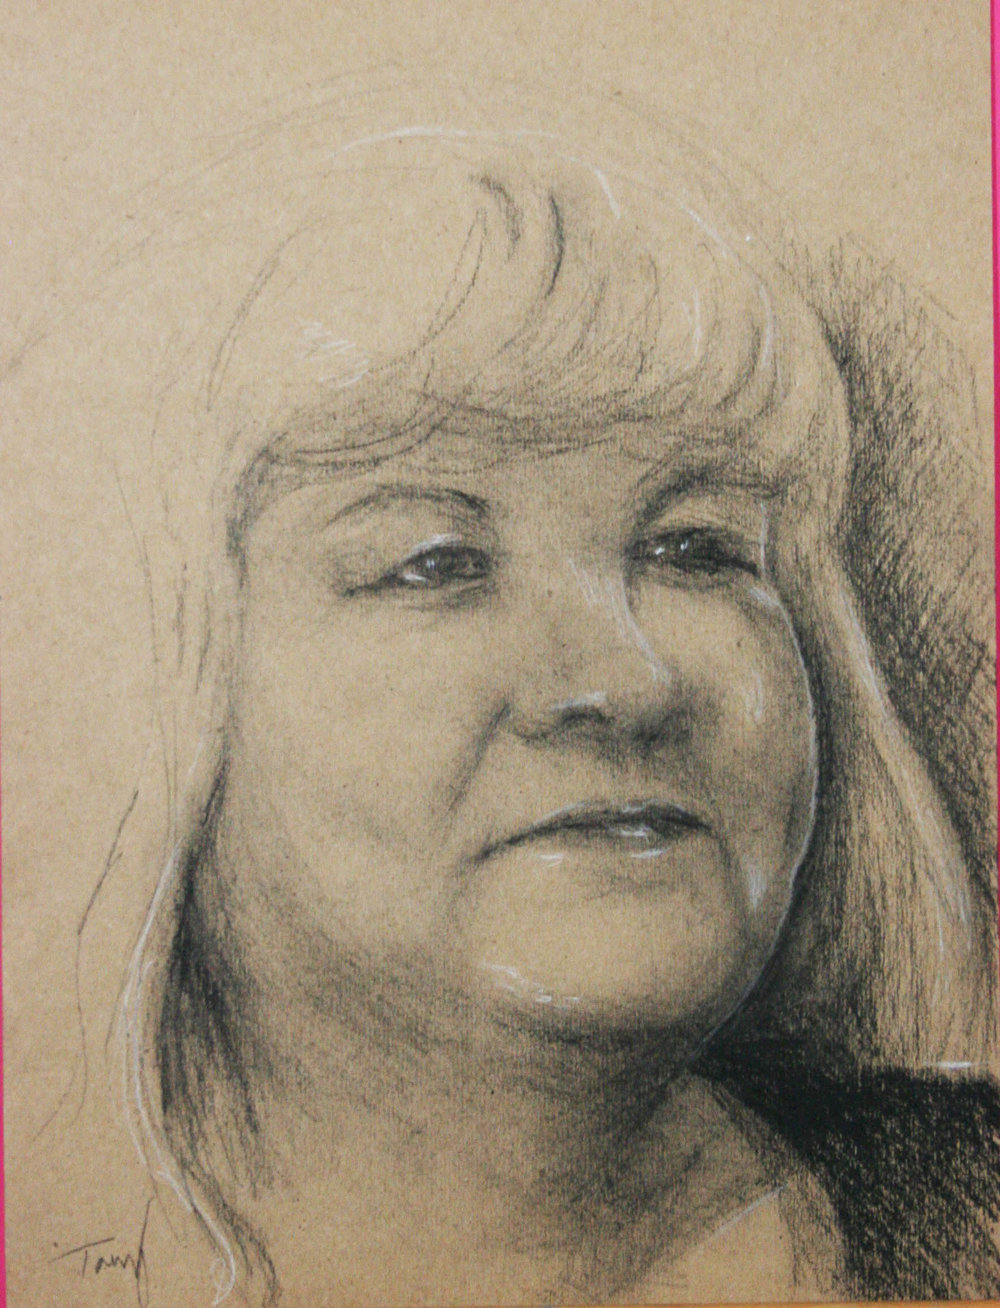 Anthony J. Robinson did this drawing.